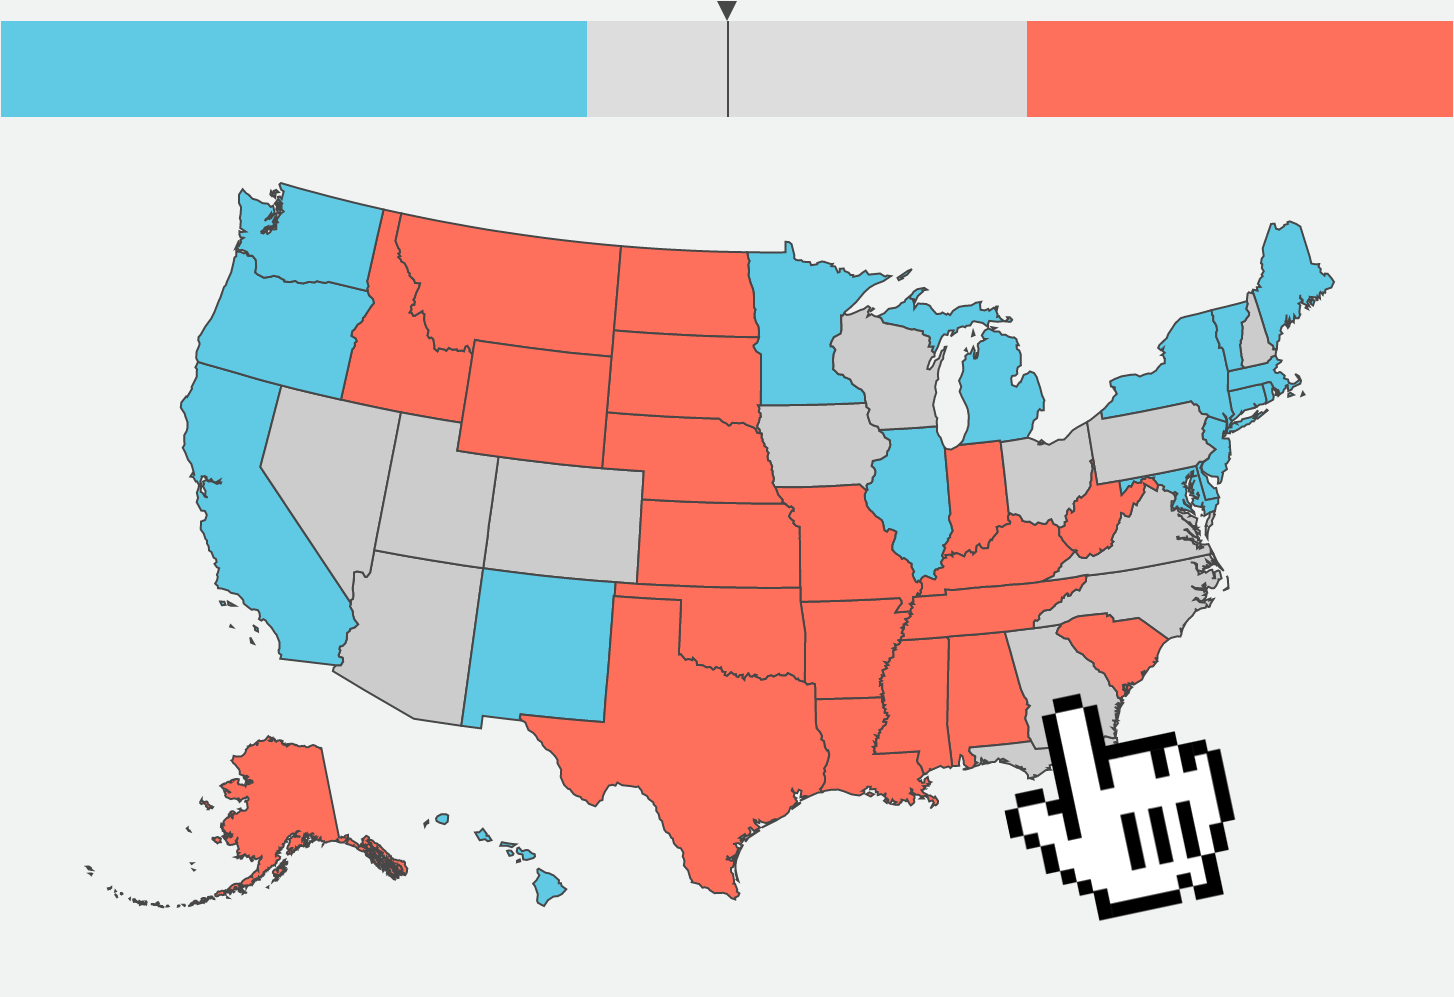 Maps Charts Vox - Simpons us map vs real voters map